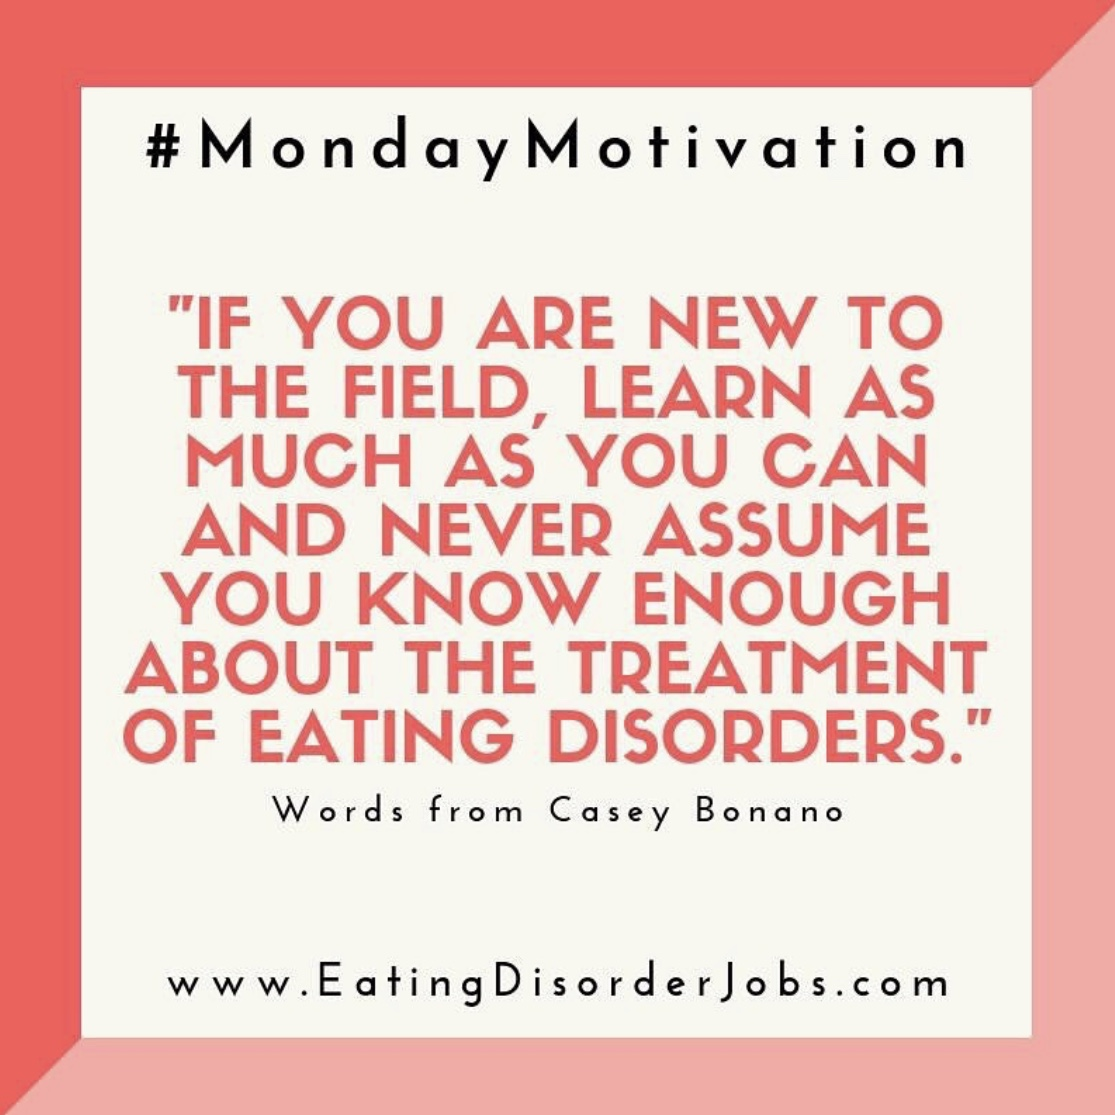 Advice on Landing a Job in The Field of Eating Disorders, Dallas Nutritional Counseling, Casey Bonano RD, LD, CEDRD #dallasnutritionalcounseling #thefoodfreedomguide #nondietapproach #caseybonanord #foodfreedom #intuitiveeating #careeradvice #eatingdisorderjobs #edjobs #psychology #dietitianjobs